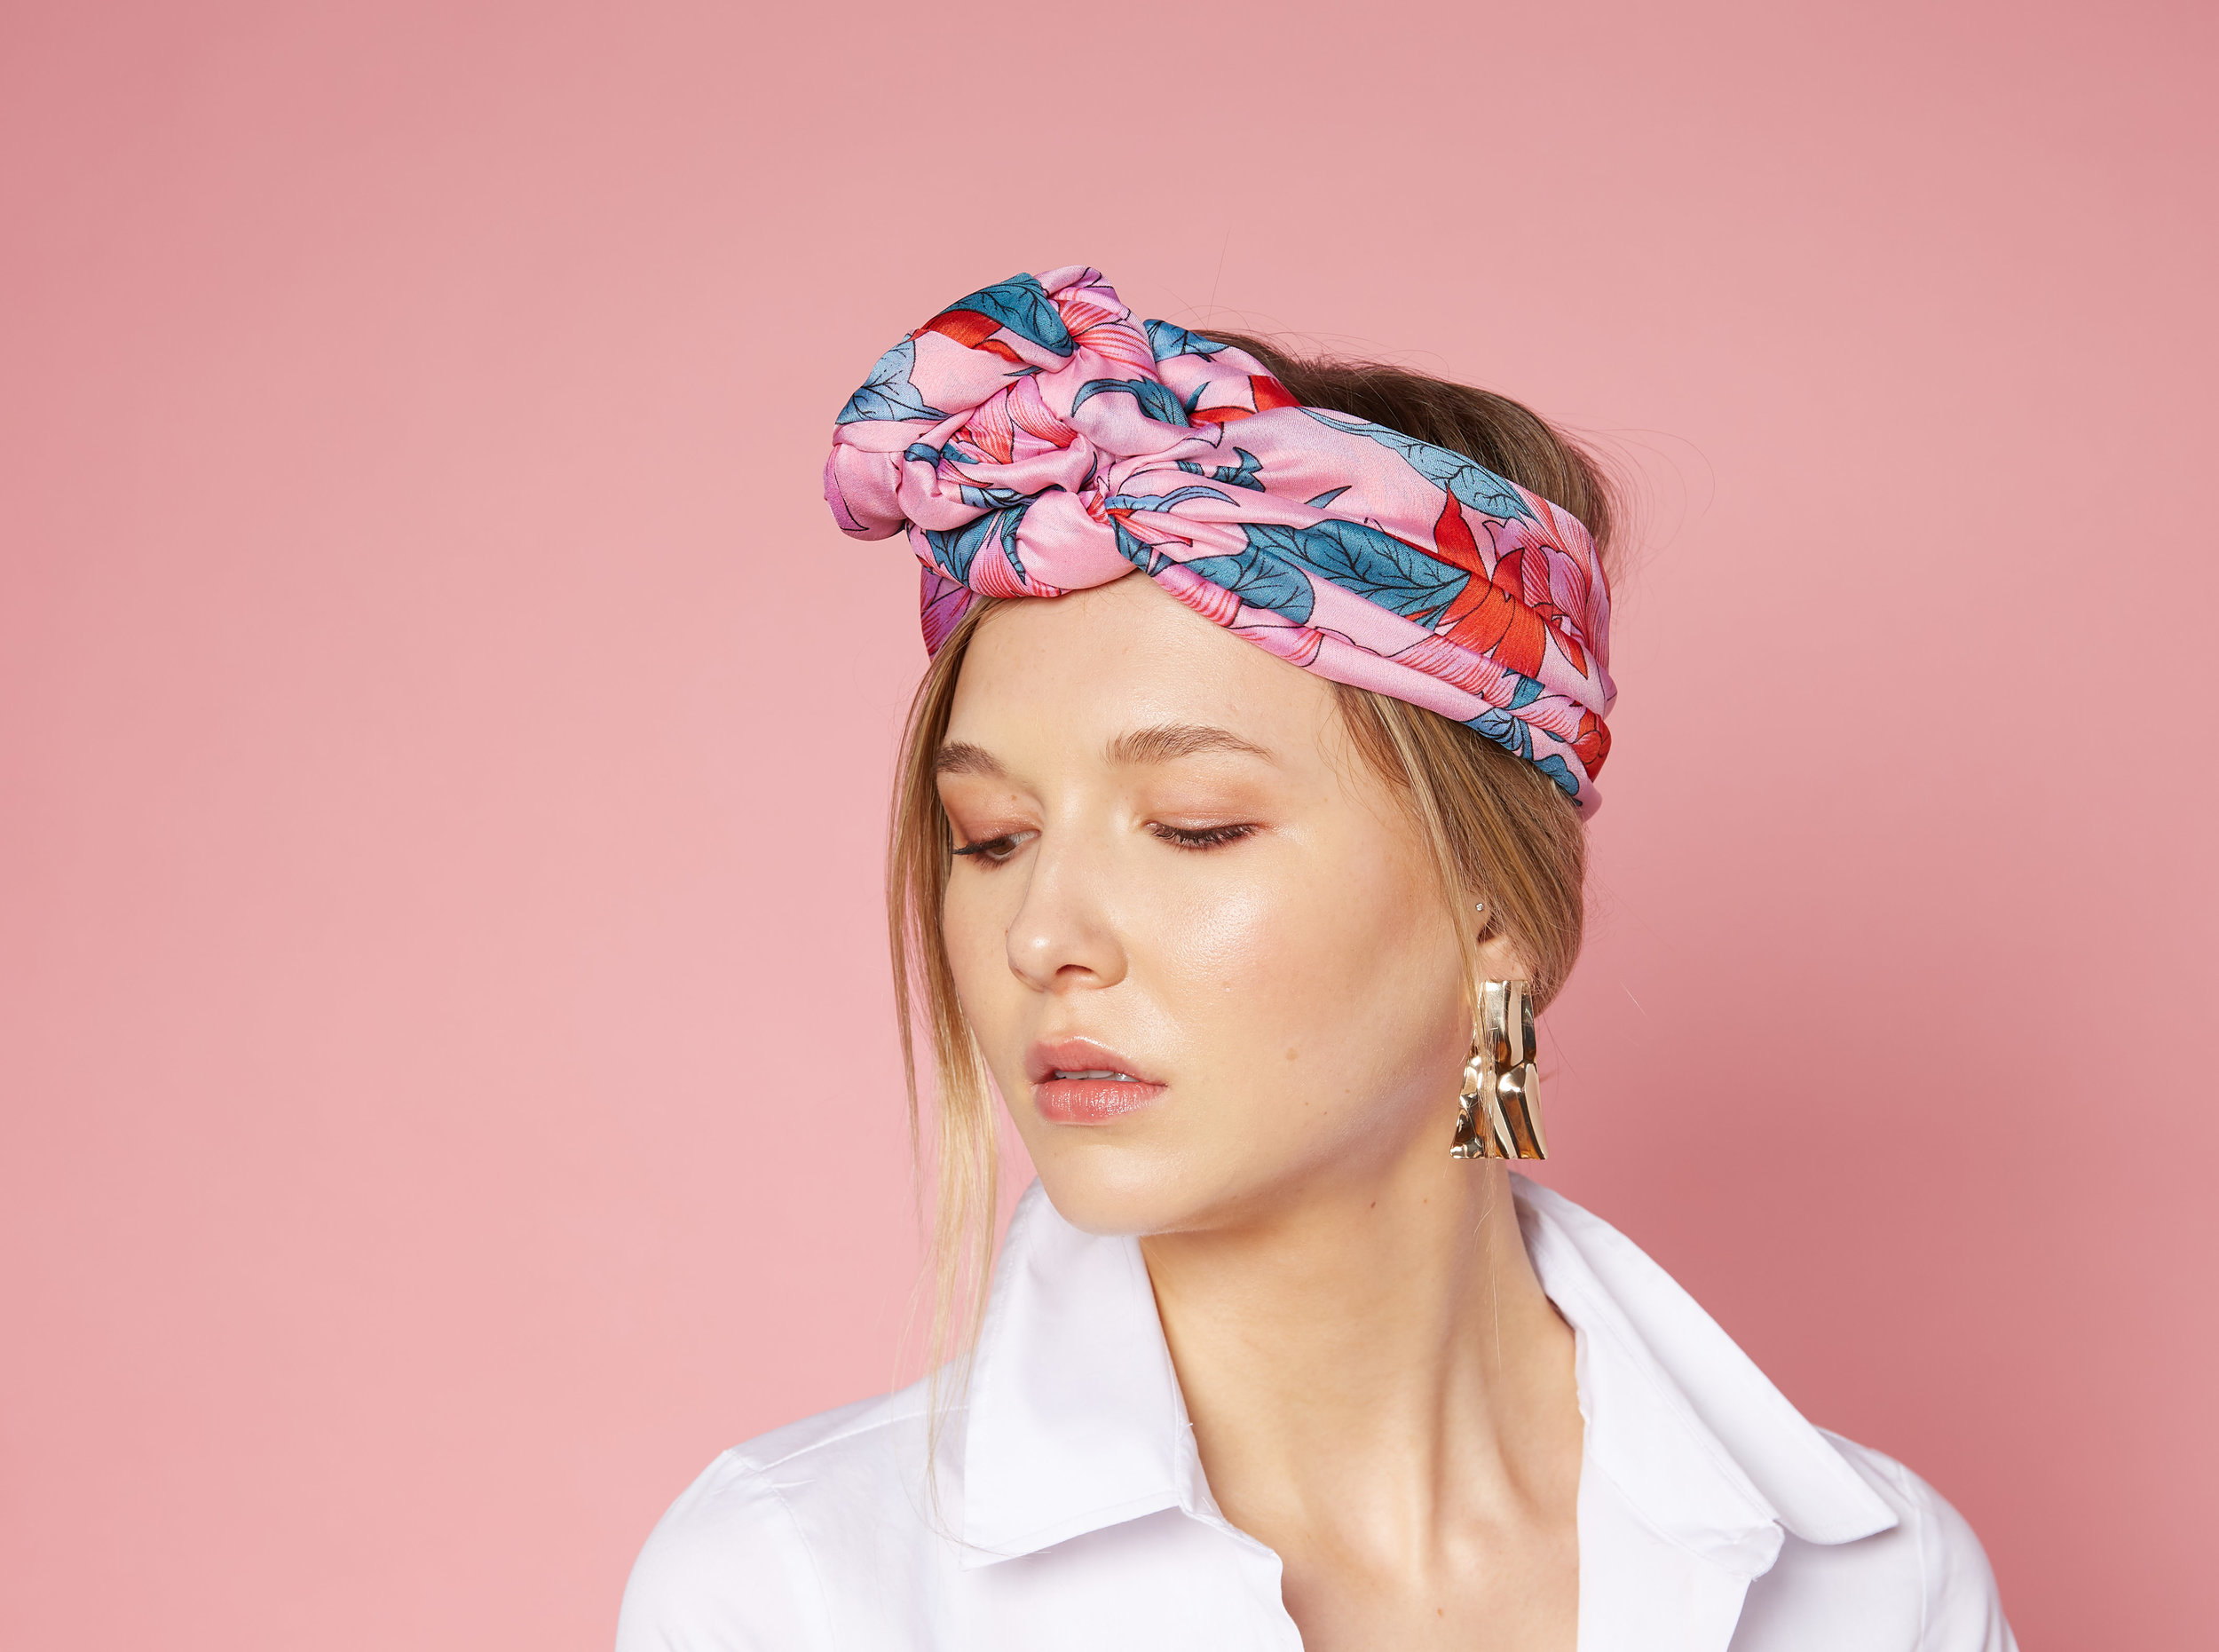 beautieslab_headbands5015.jpg